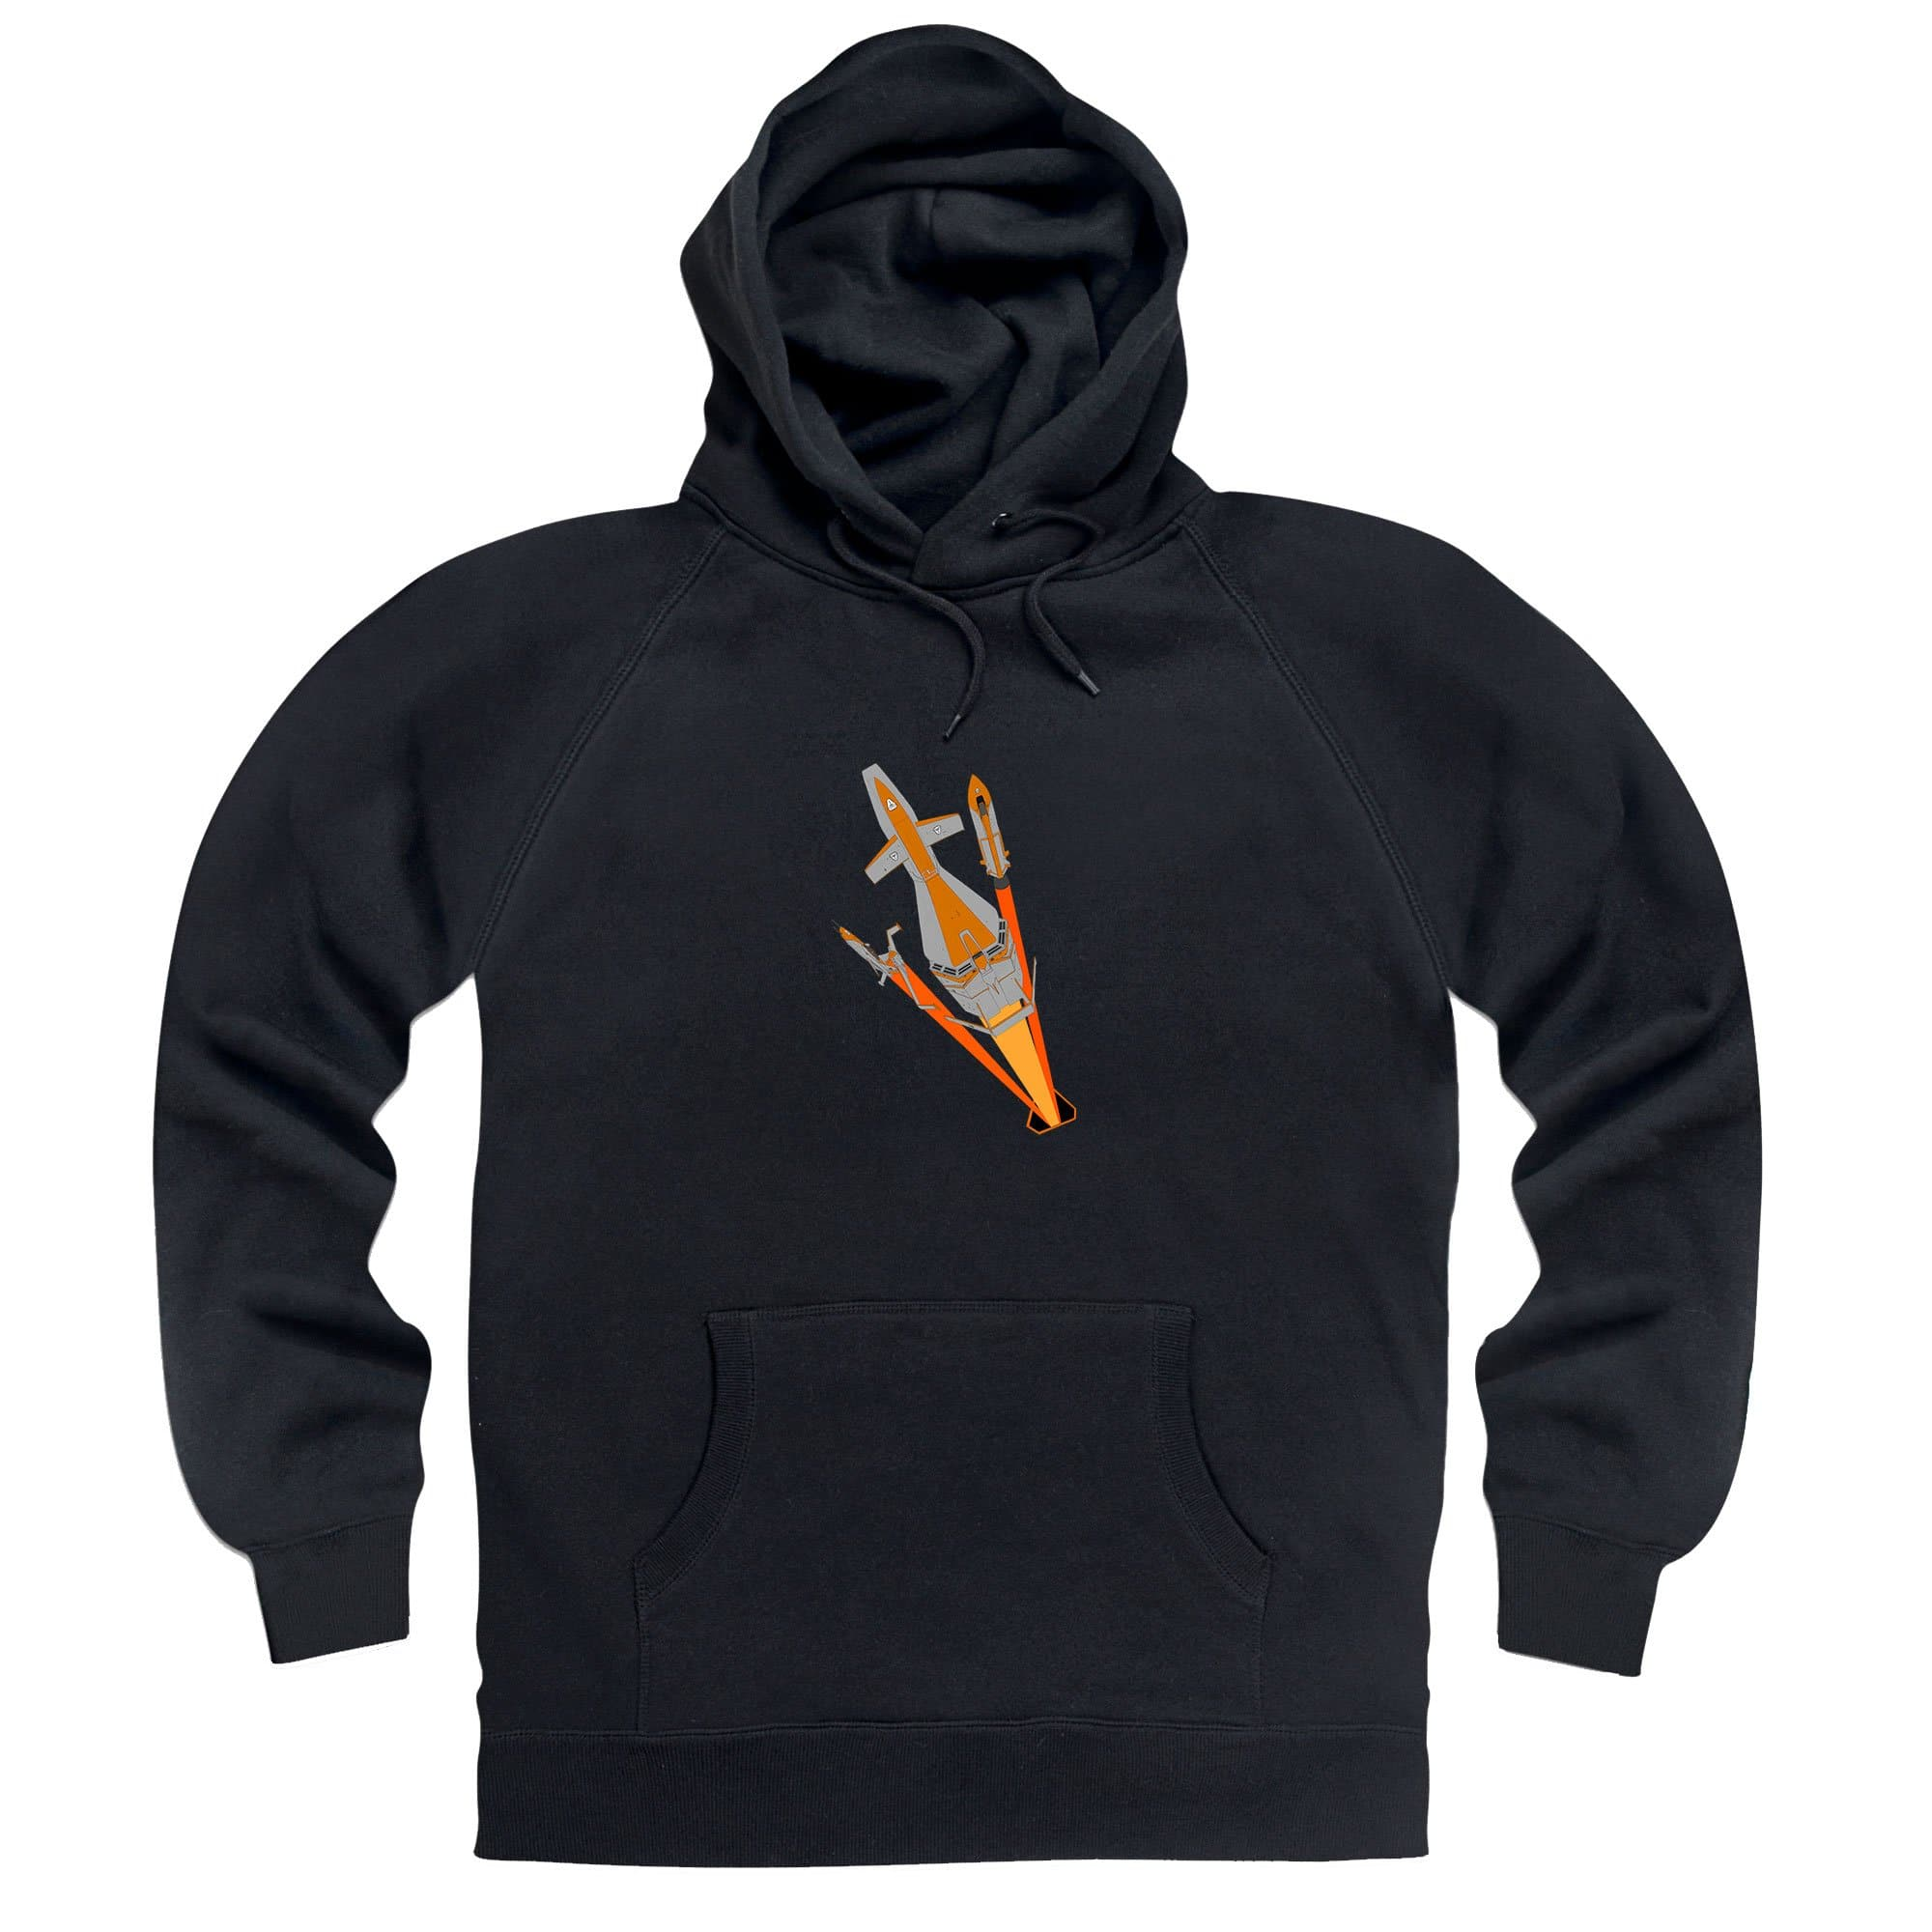 Terrahawks Vehicles Hoodie [Official & Exclusive]